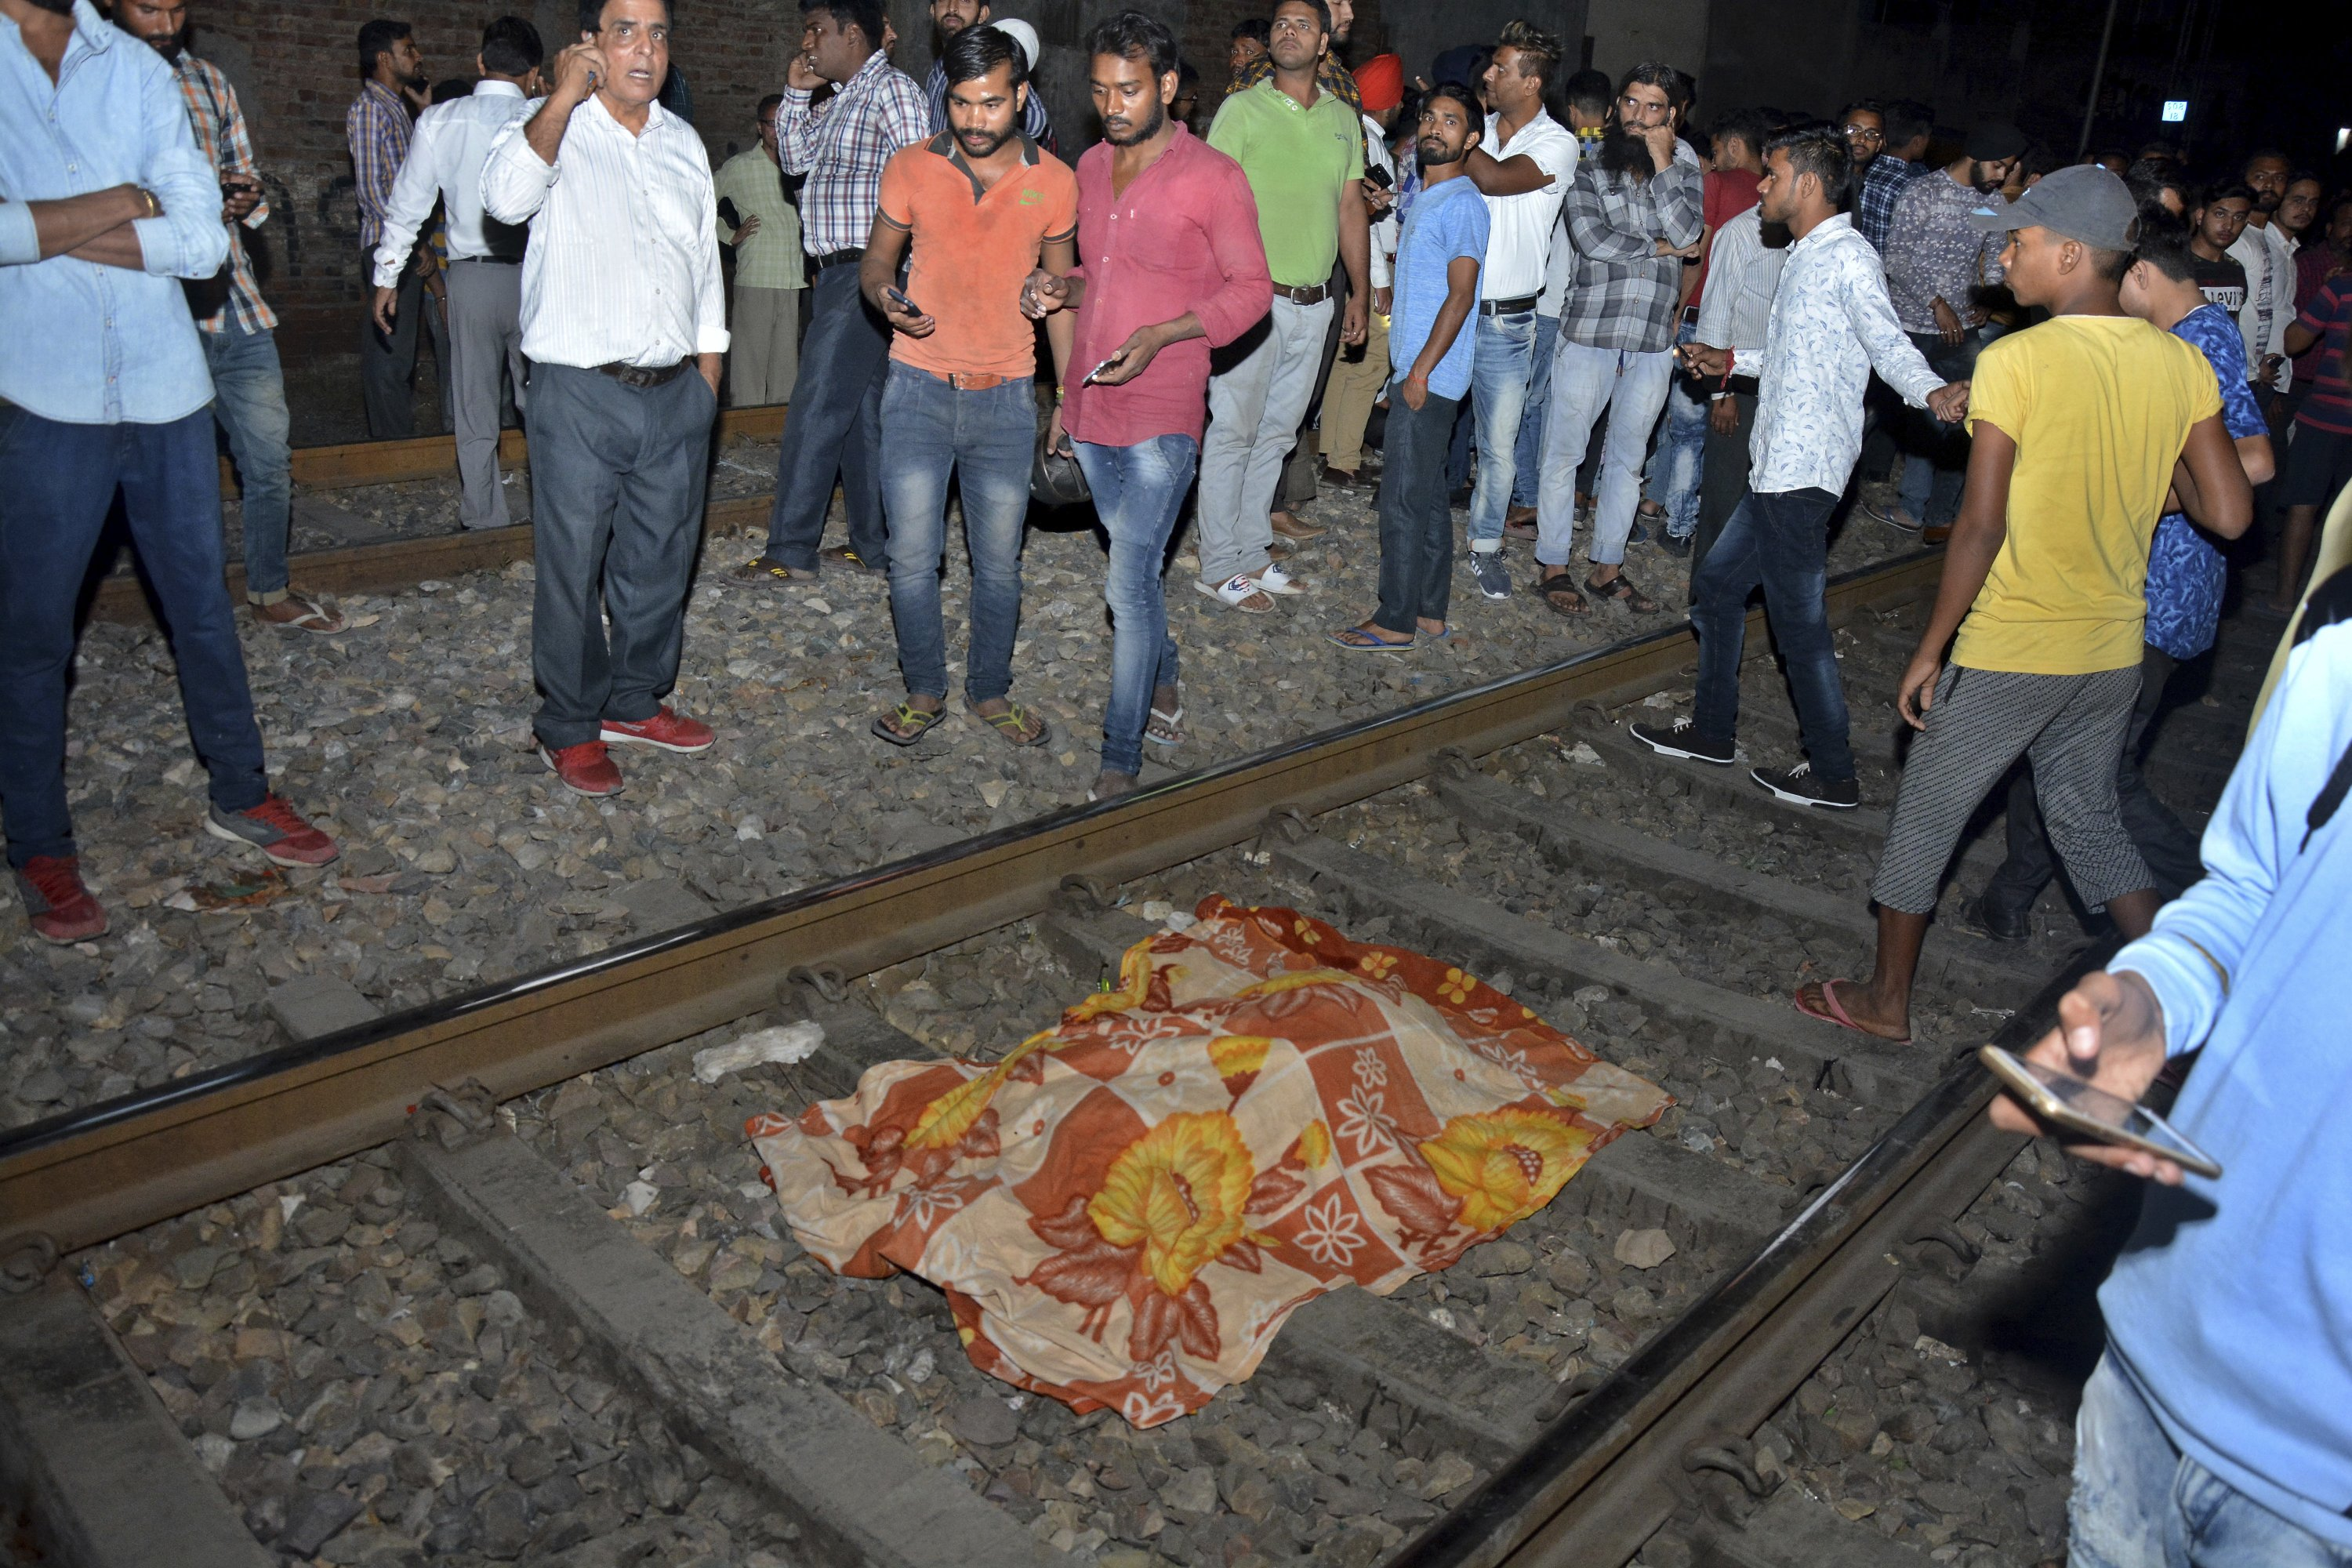 Train mows down crowd at India festival, at least 60 dead